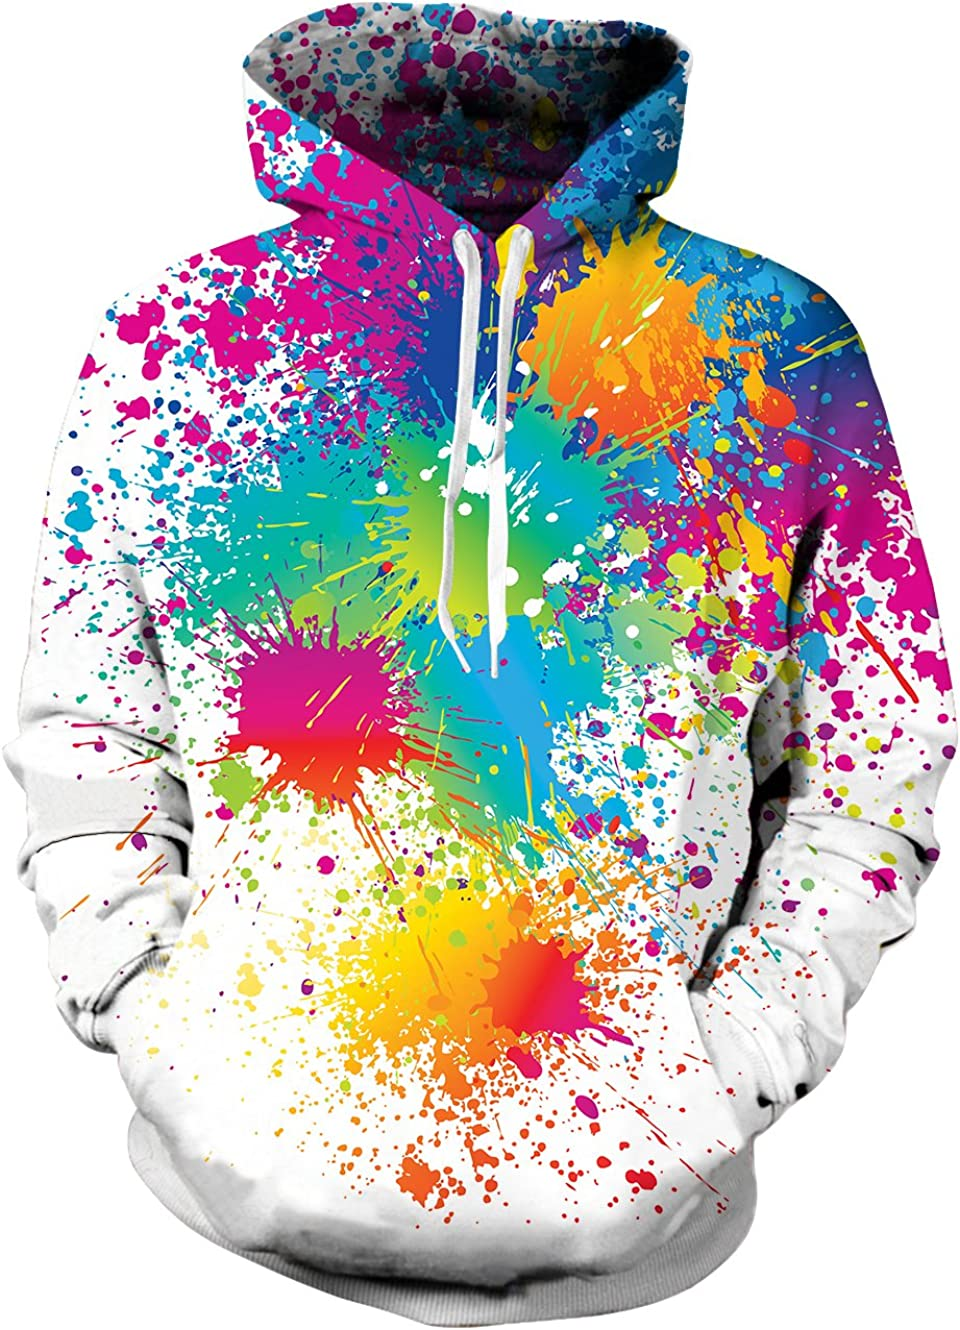 UNIFACO Unisex Realistic 3D Max 79% OFF Print Galaxy Pullover Hoodie P Funny Wholesale